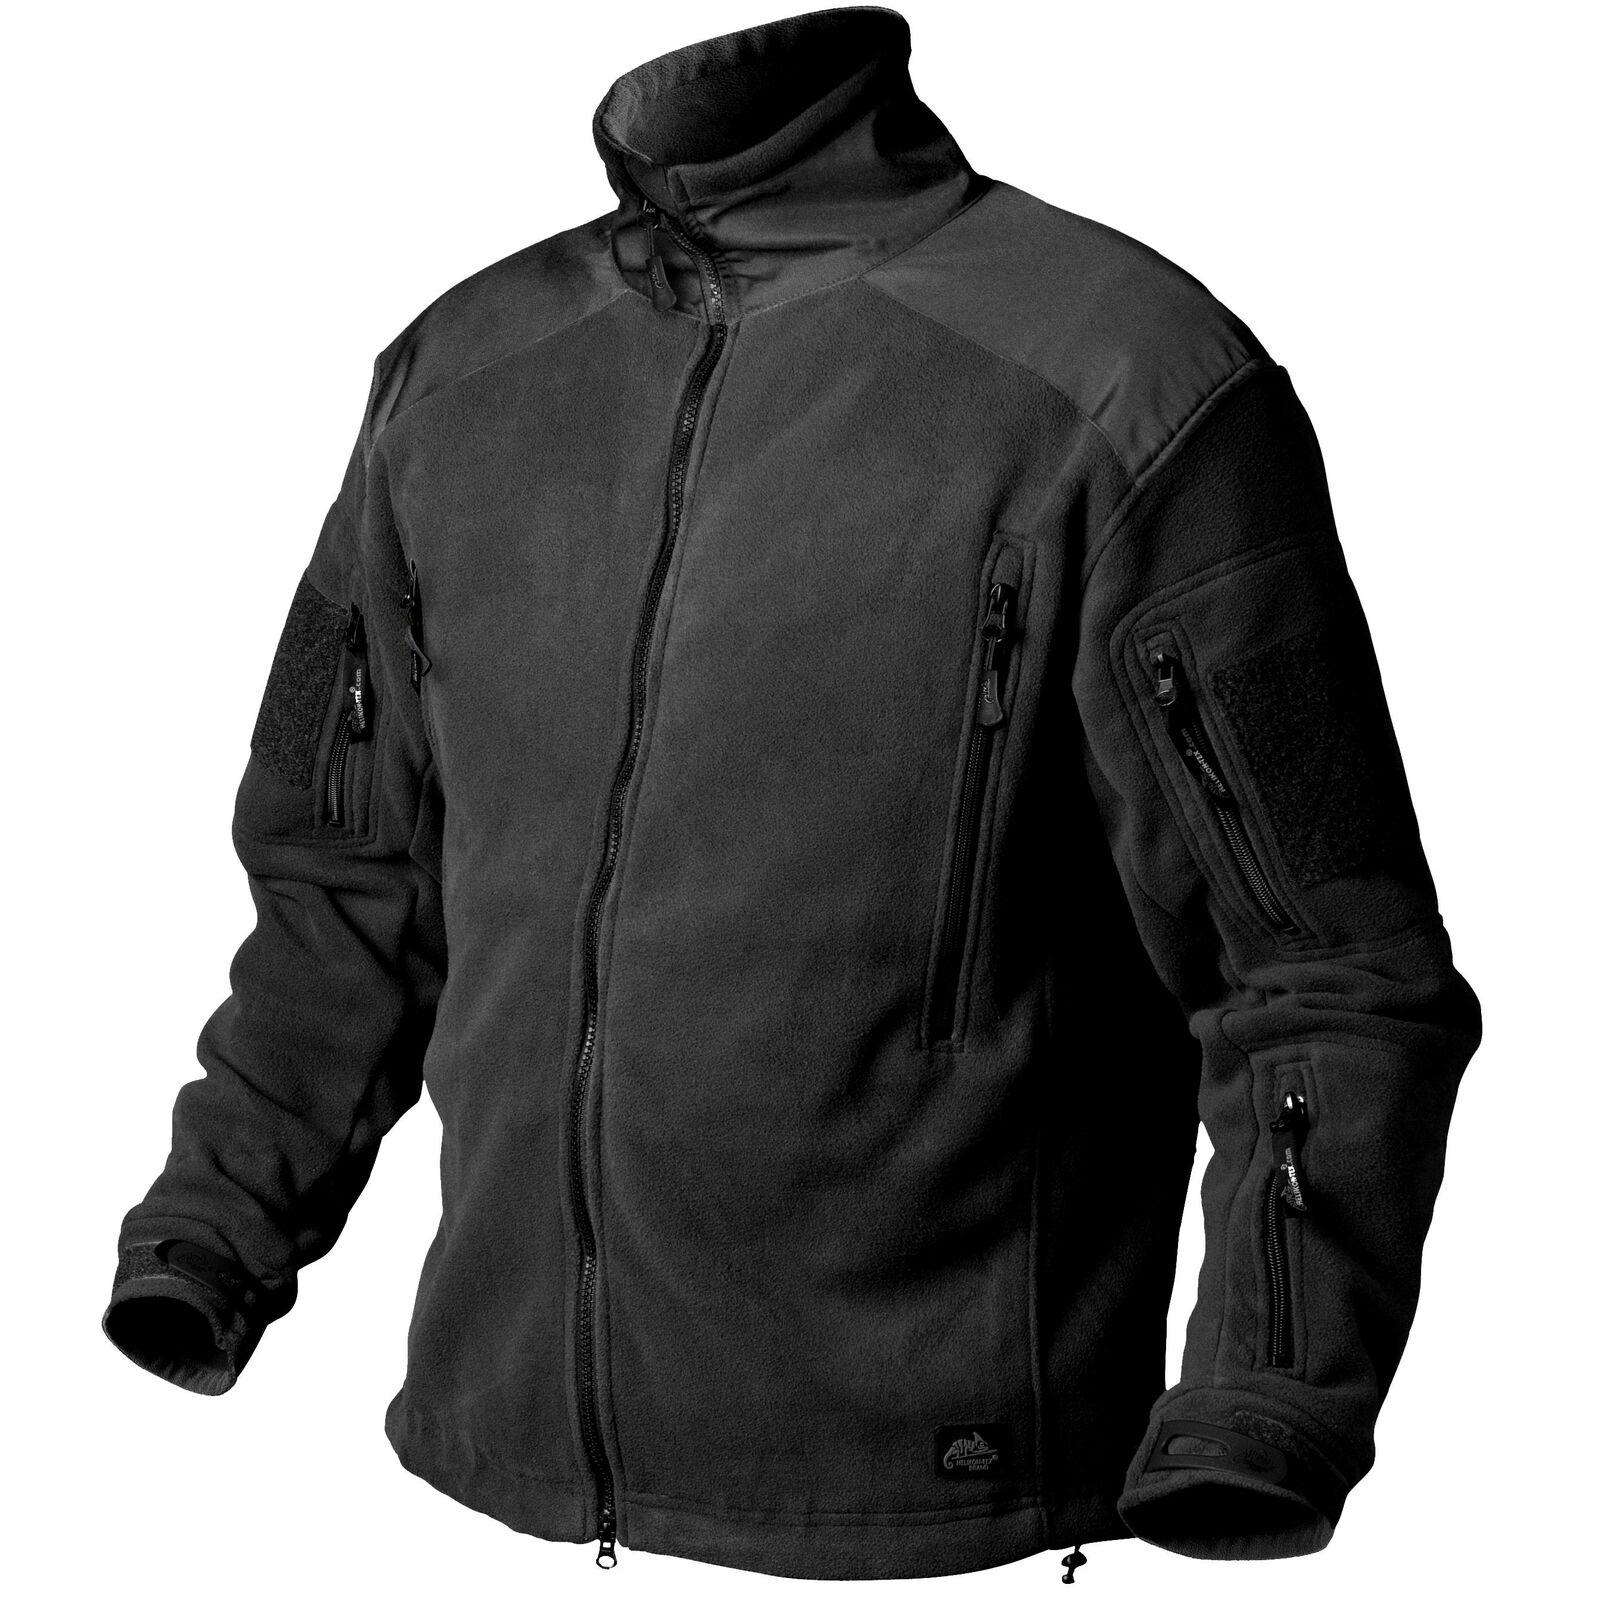 Helikon Tex Liberty Heavy Fleece Jacket Jacke schwarz   Schwarz Outdoor - 390g m2